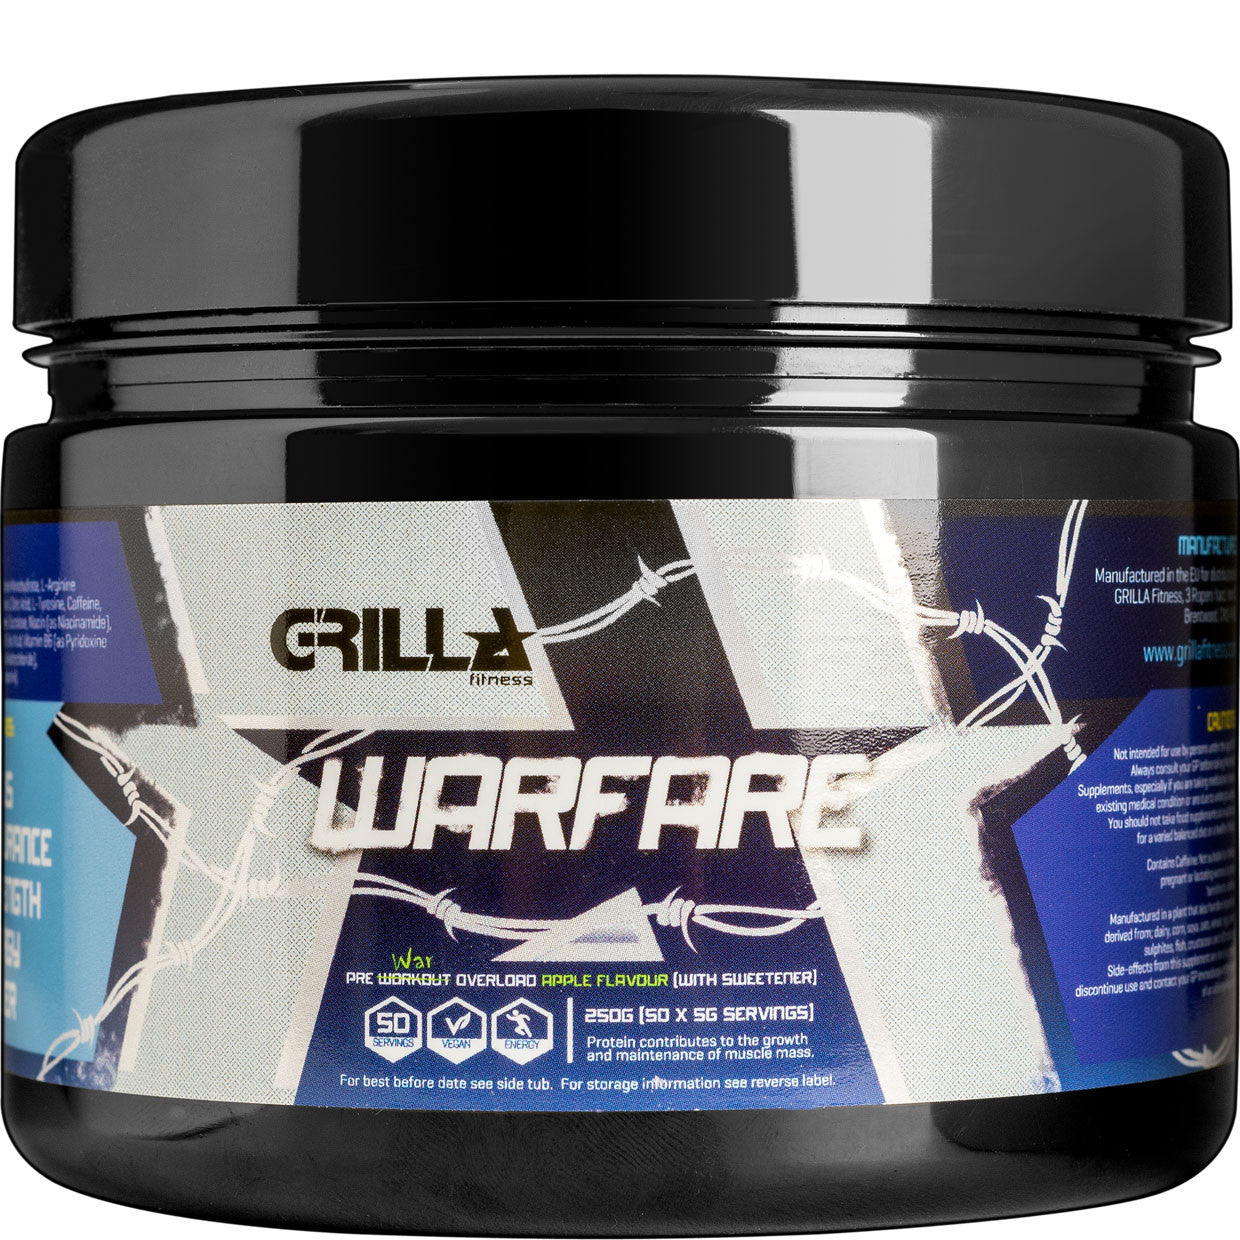 Grilla Warfare Pre workout